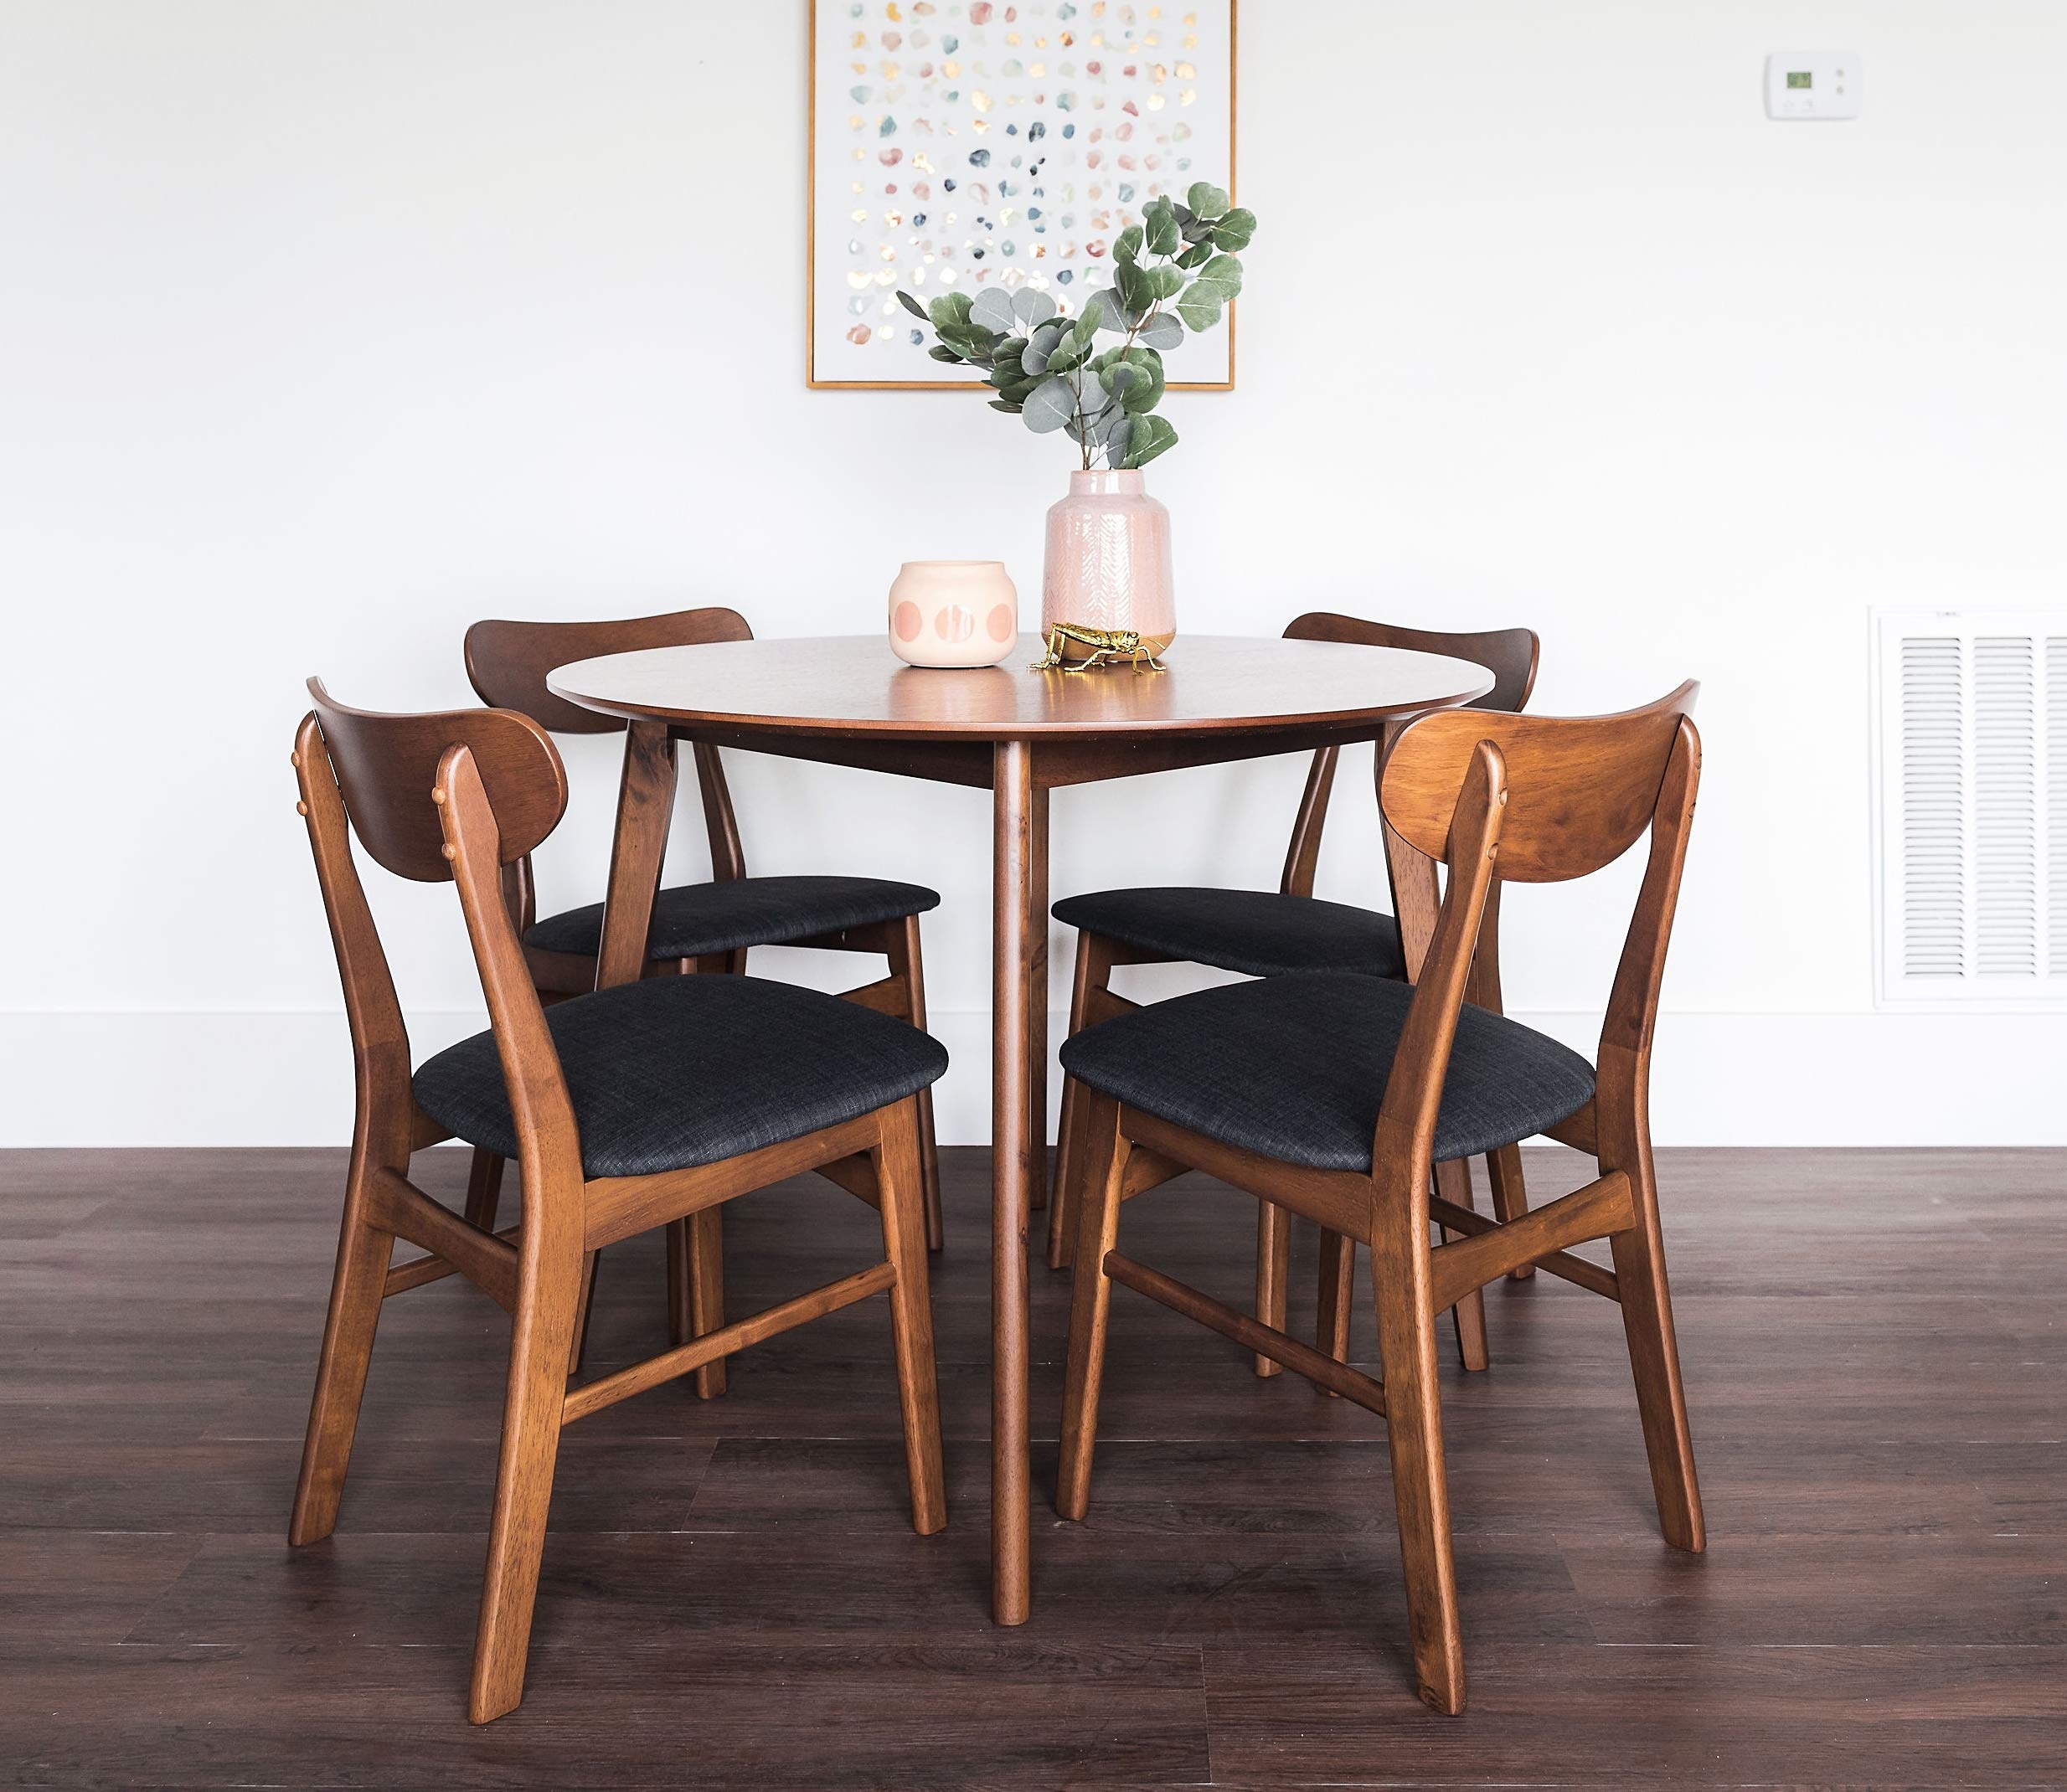 Edloe Finch 5 Piece Round Dining Table Set for 4, Walnut Top by Edloe Finch